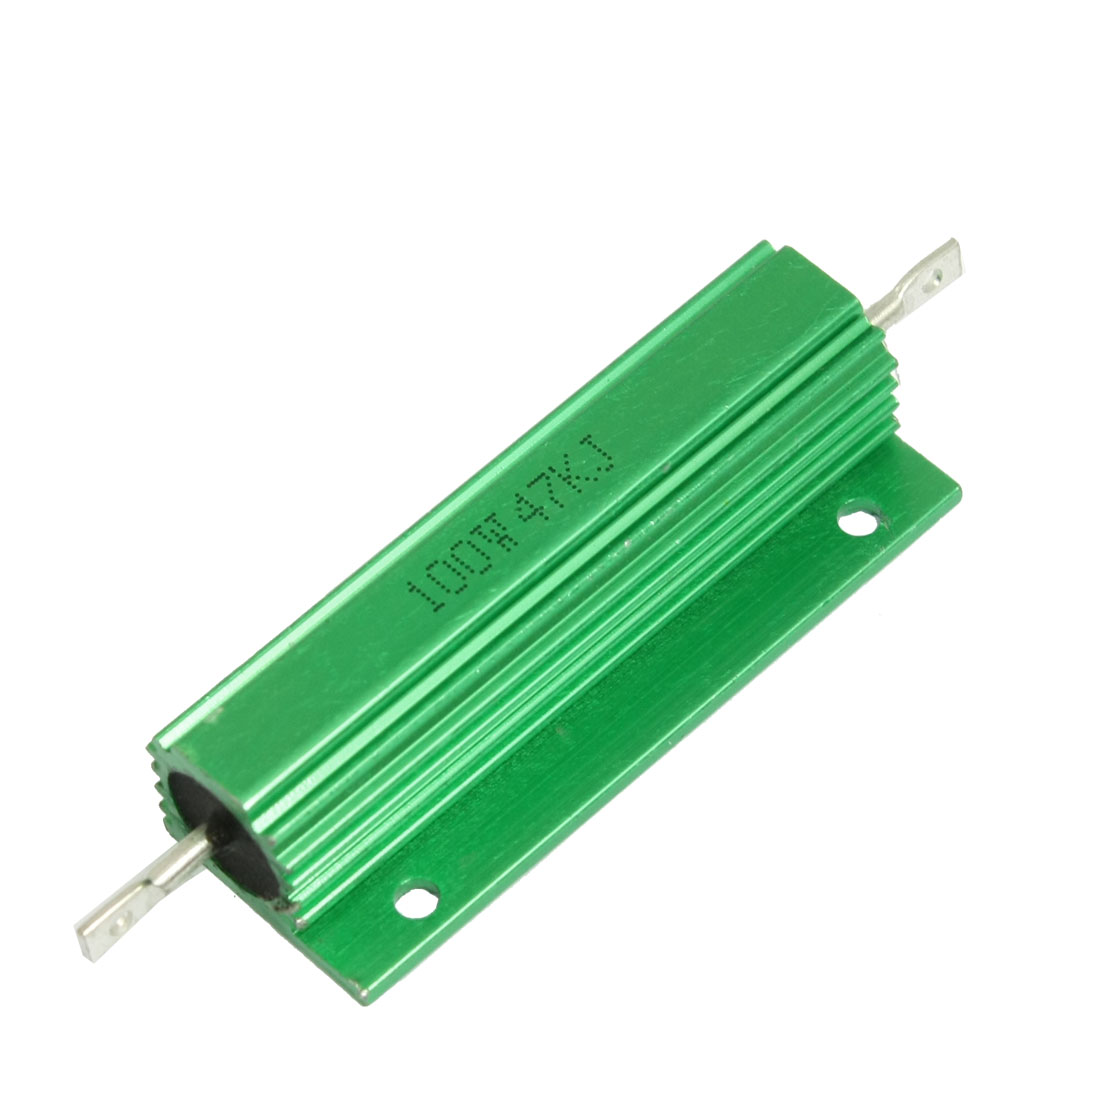 100W 47K Ohm Green Aluminium Clad Chassis Mounted Housed Resistor